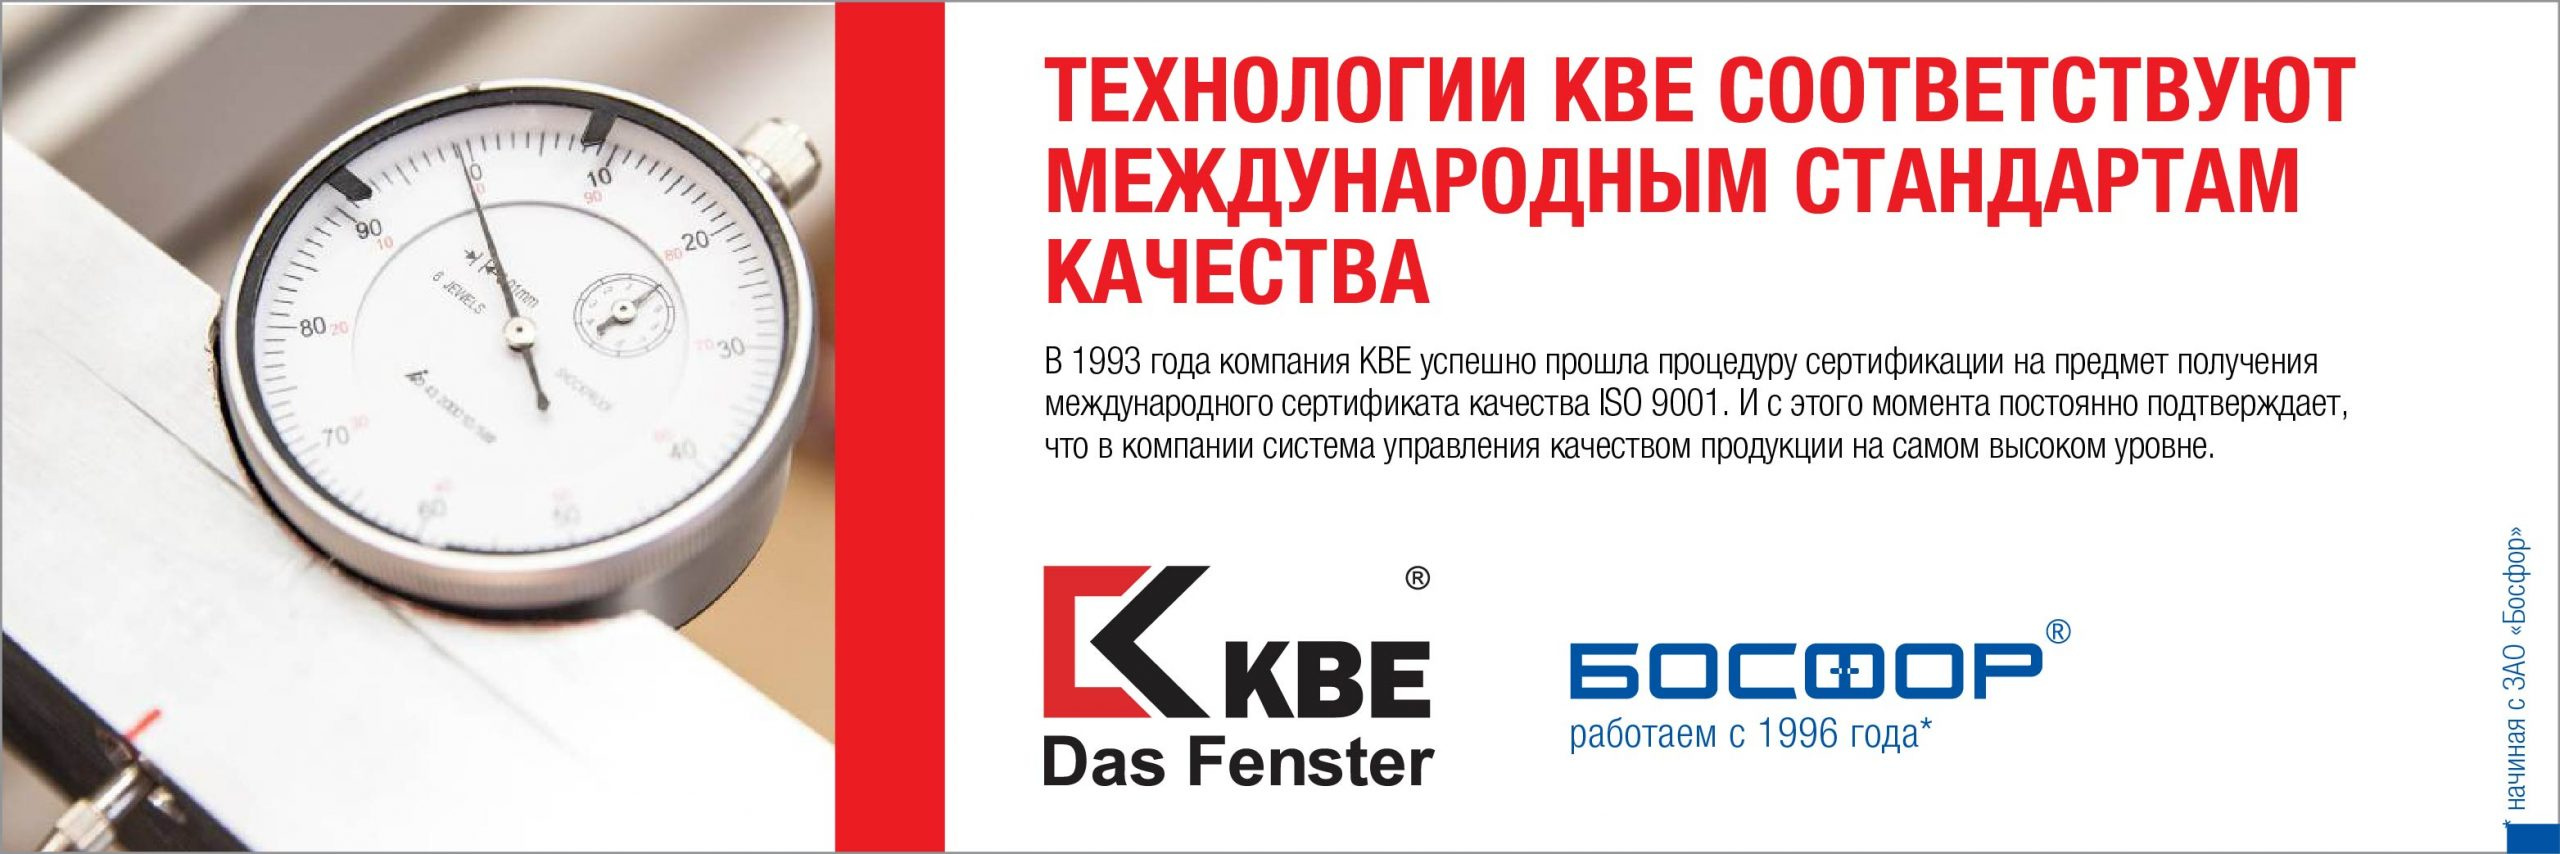 site_banners_kbe-06